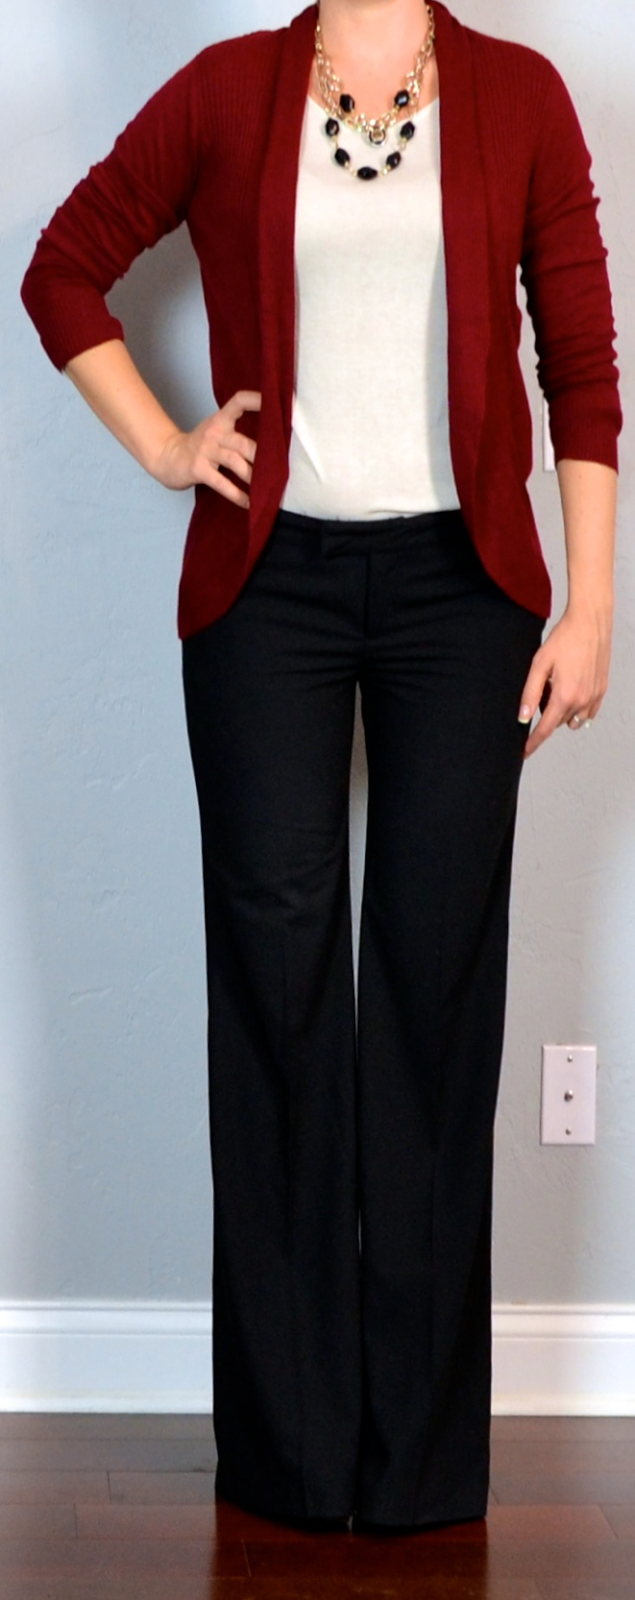 Outfit Posts: outfit post: burgundy/maroon cardigan, cream shirt ...